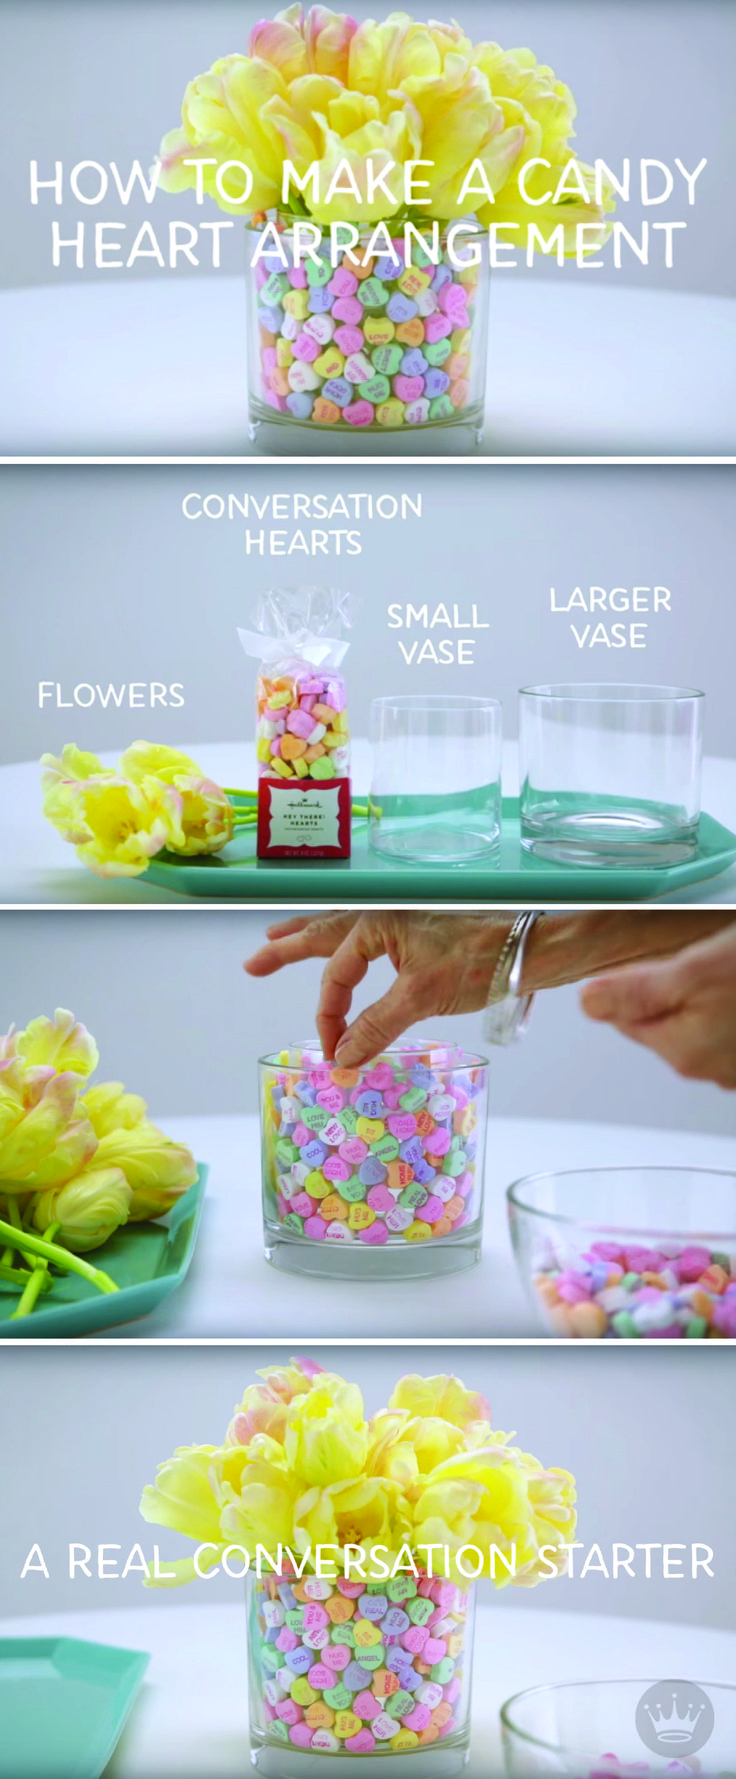 Get the conversation started with this colorful DIY Valentine's Day centerpiece idea. Click to find out how to make this simple centerpiece and get more Valentine's Day party ideas from Hallmark!